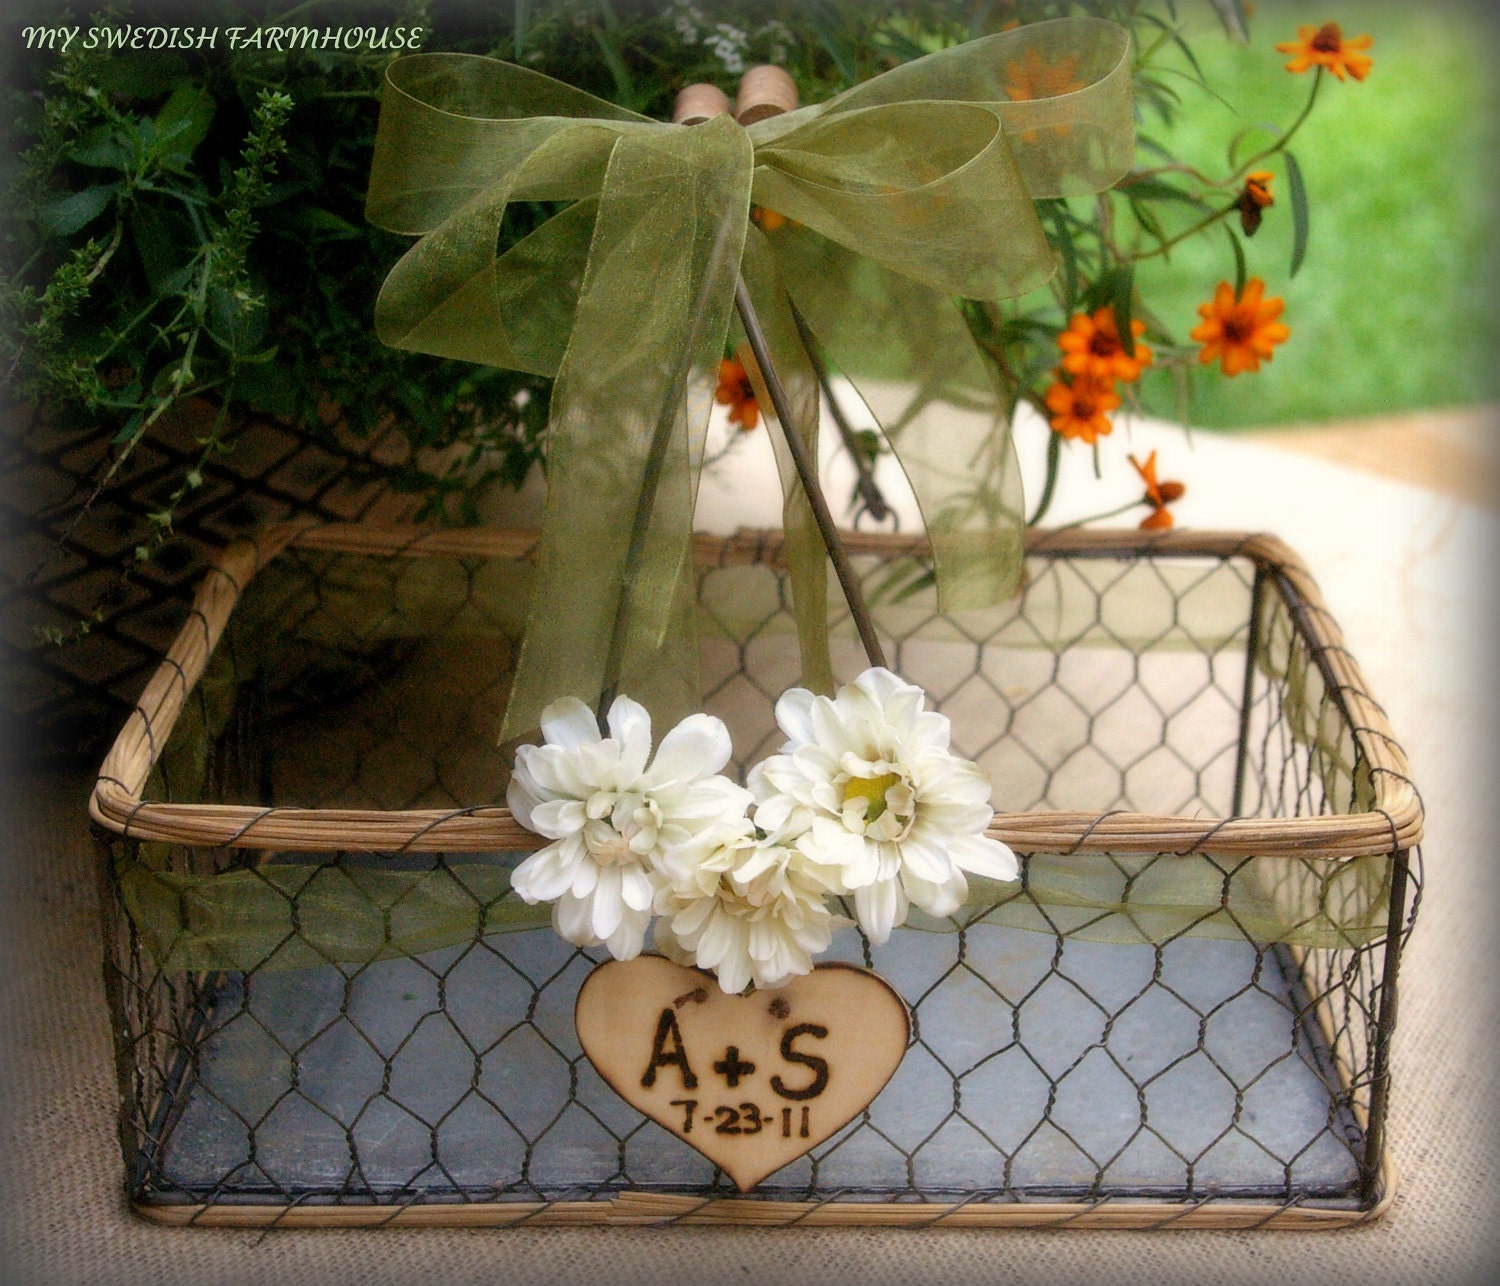 LG Chicken Wire Card Basket Box Table Centerpiece Rustic Barn Wedding Personalized Engraved Heart Your